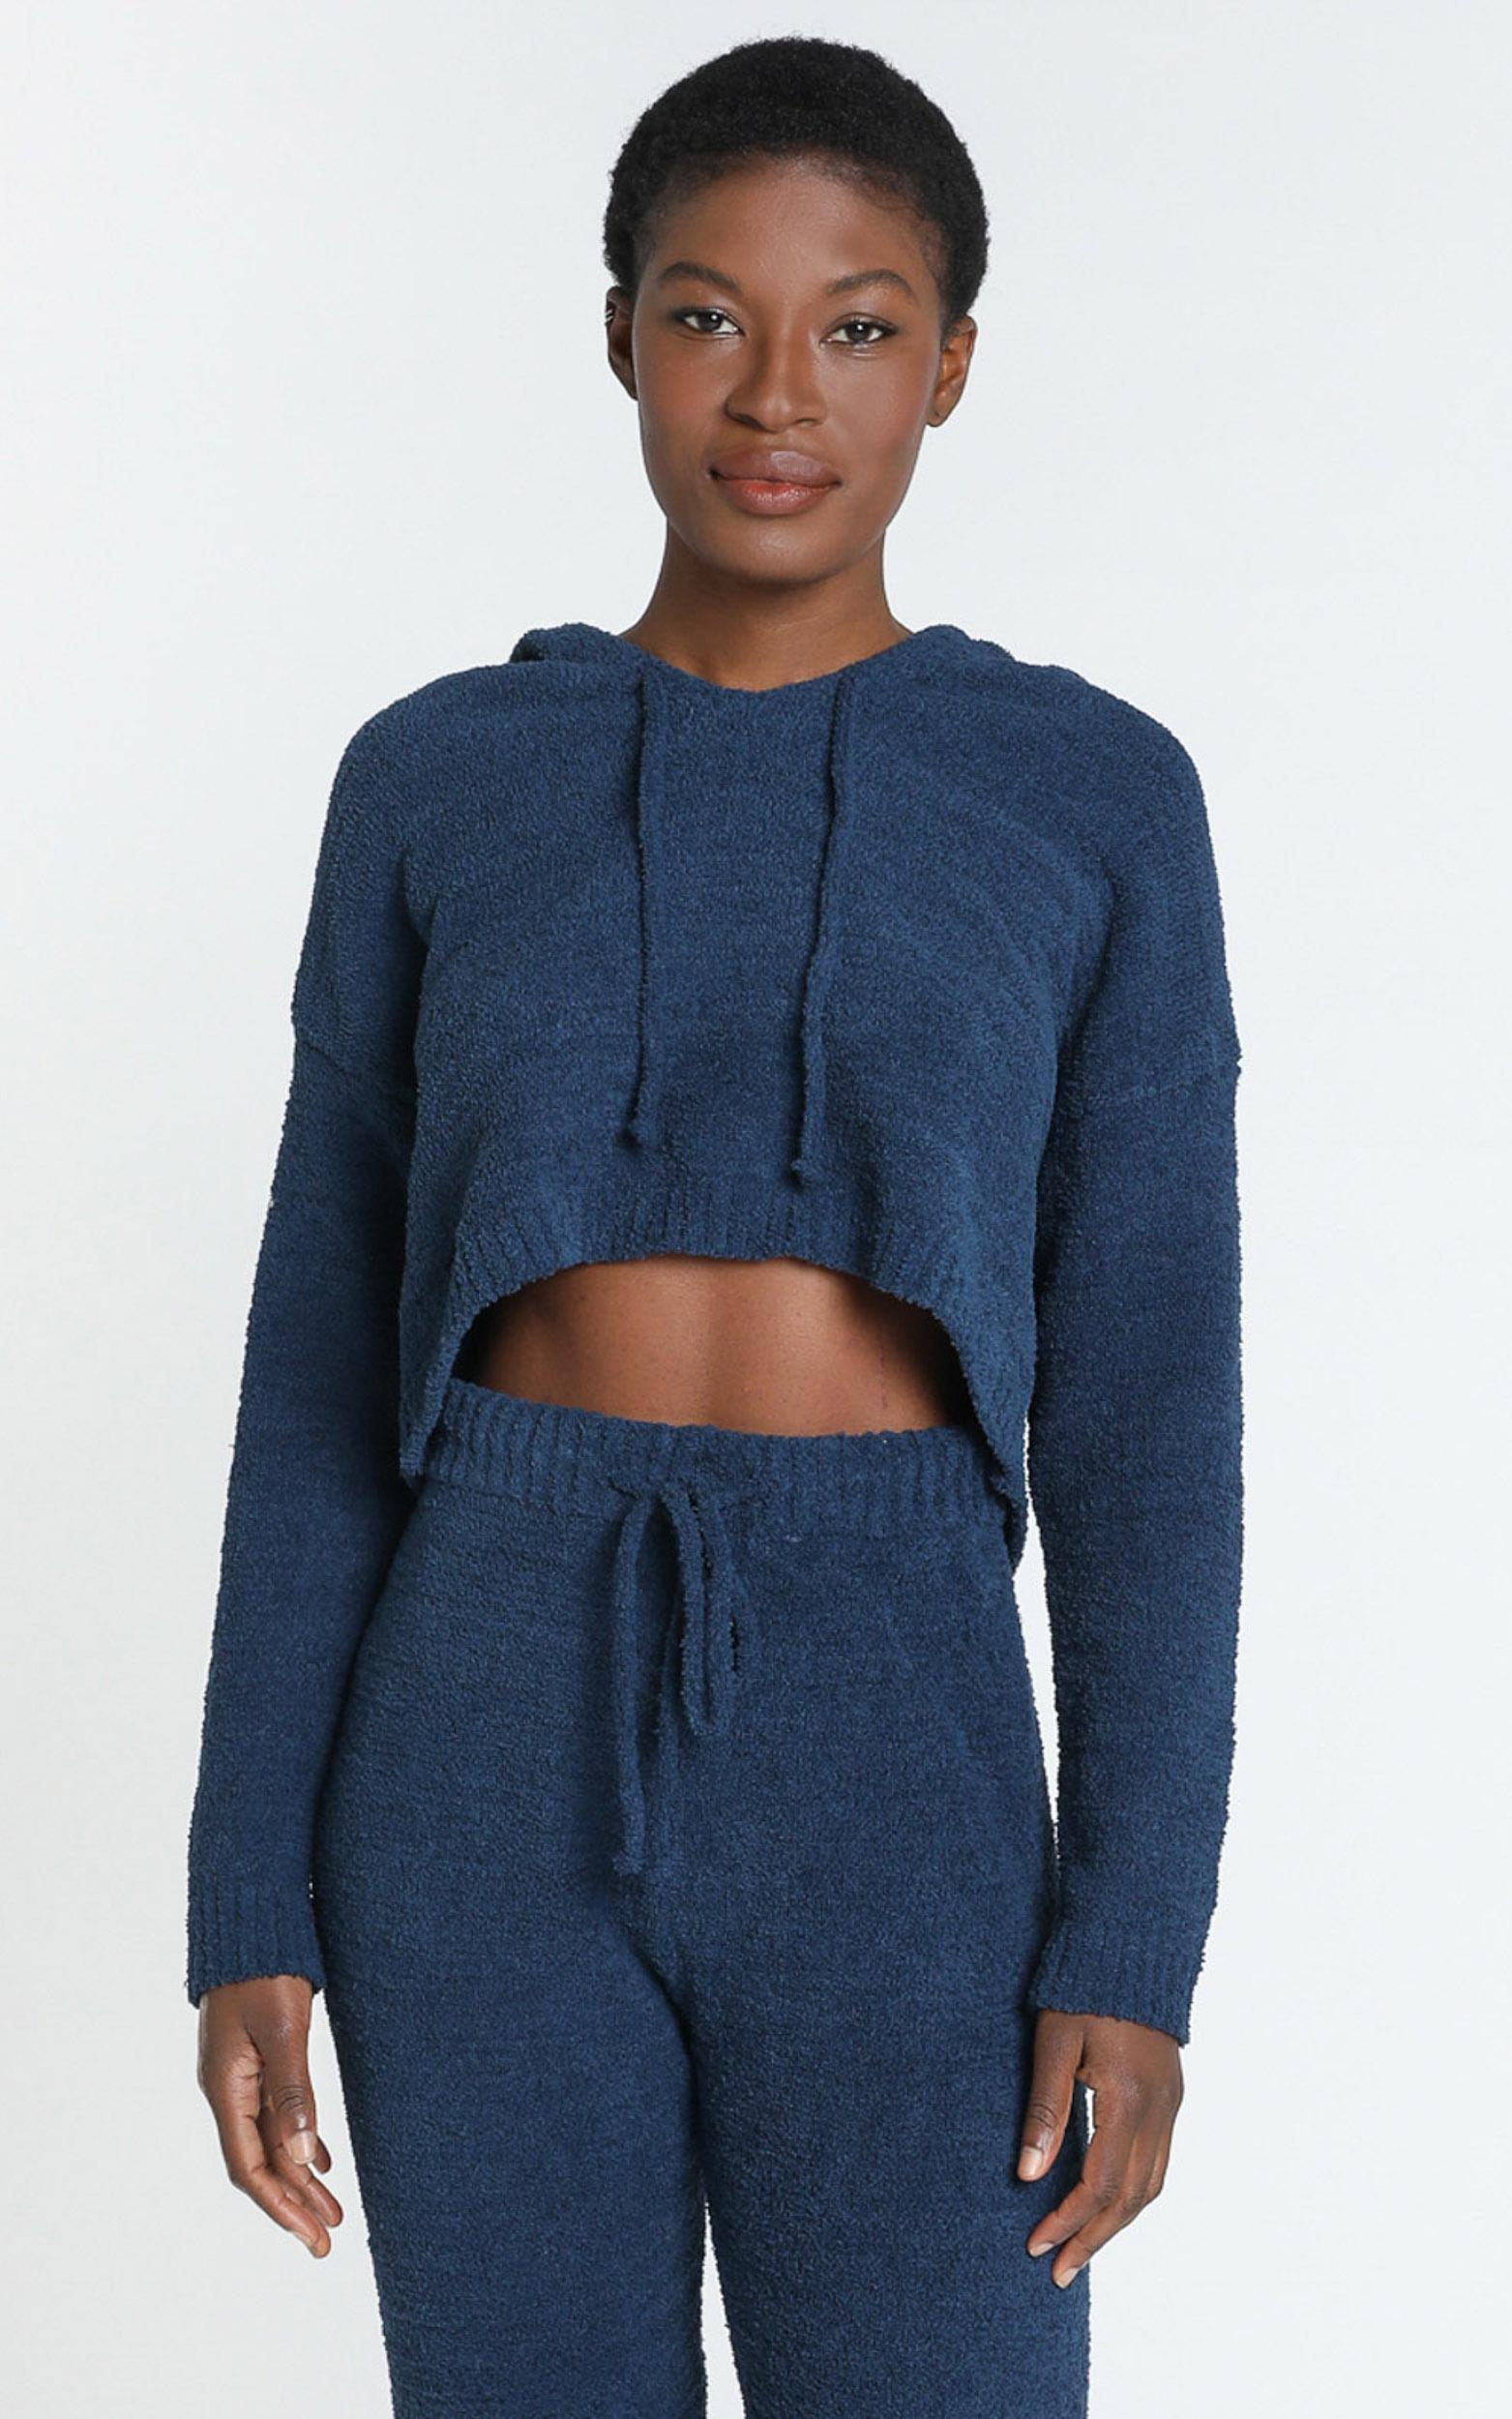 Adelie Super Soft Knit Hoody in Navy - S, NVY2, hi-res image number null